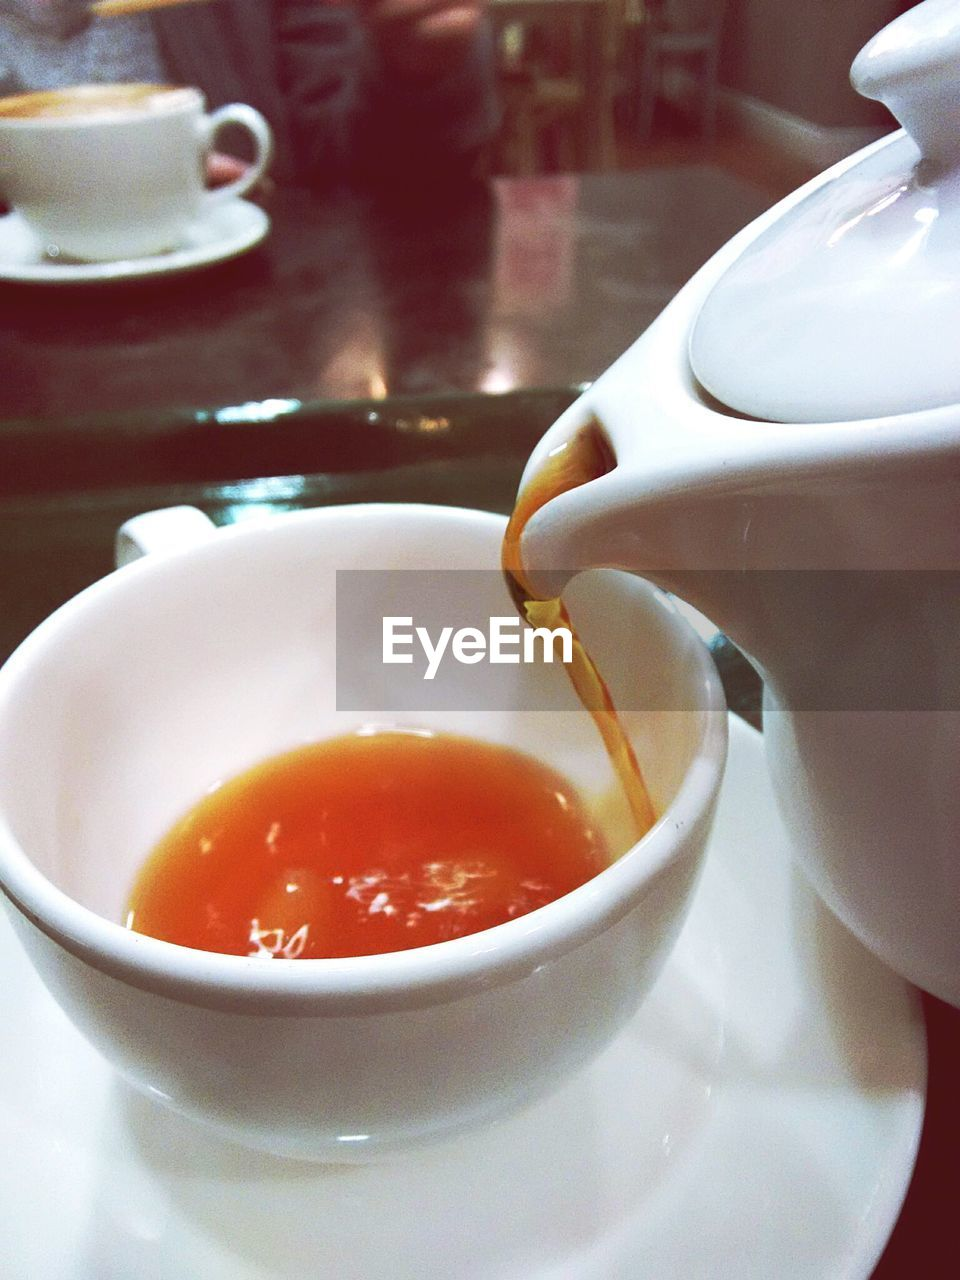 CLOSE-UP OF TEA CUP IN BOWL